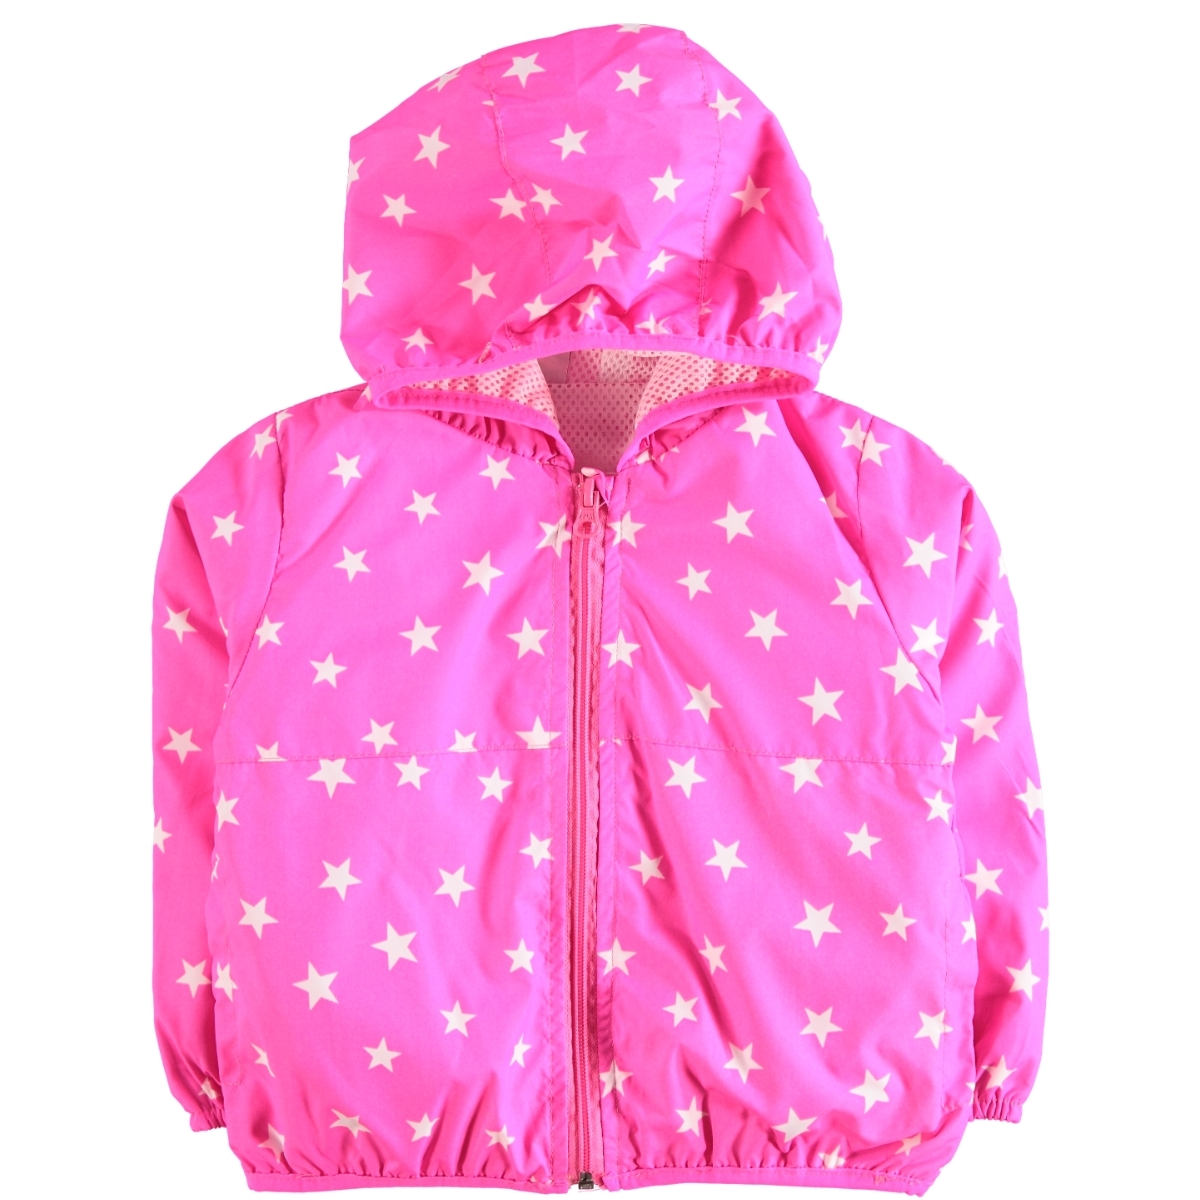 Civil Girls Pink Raincoat Girl Child The Ages Of 10-13